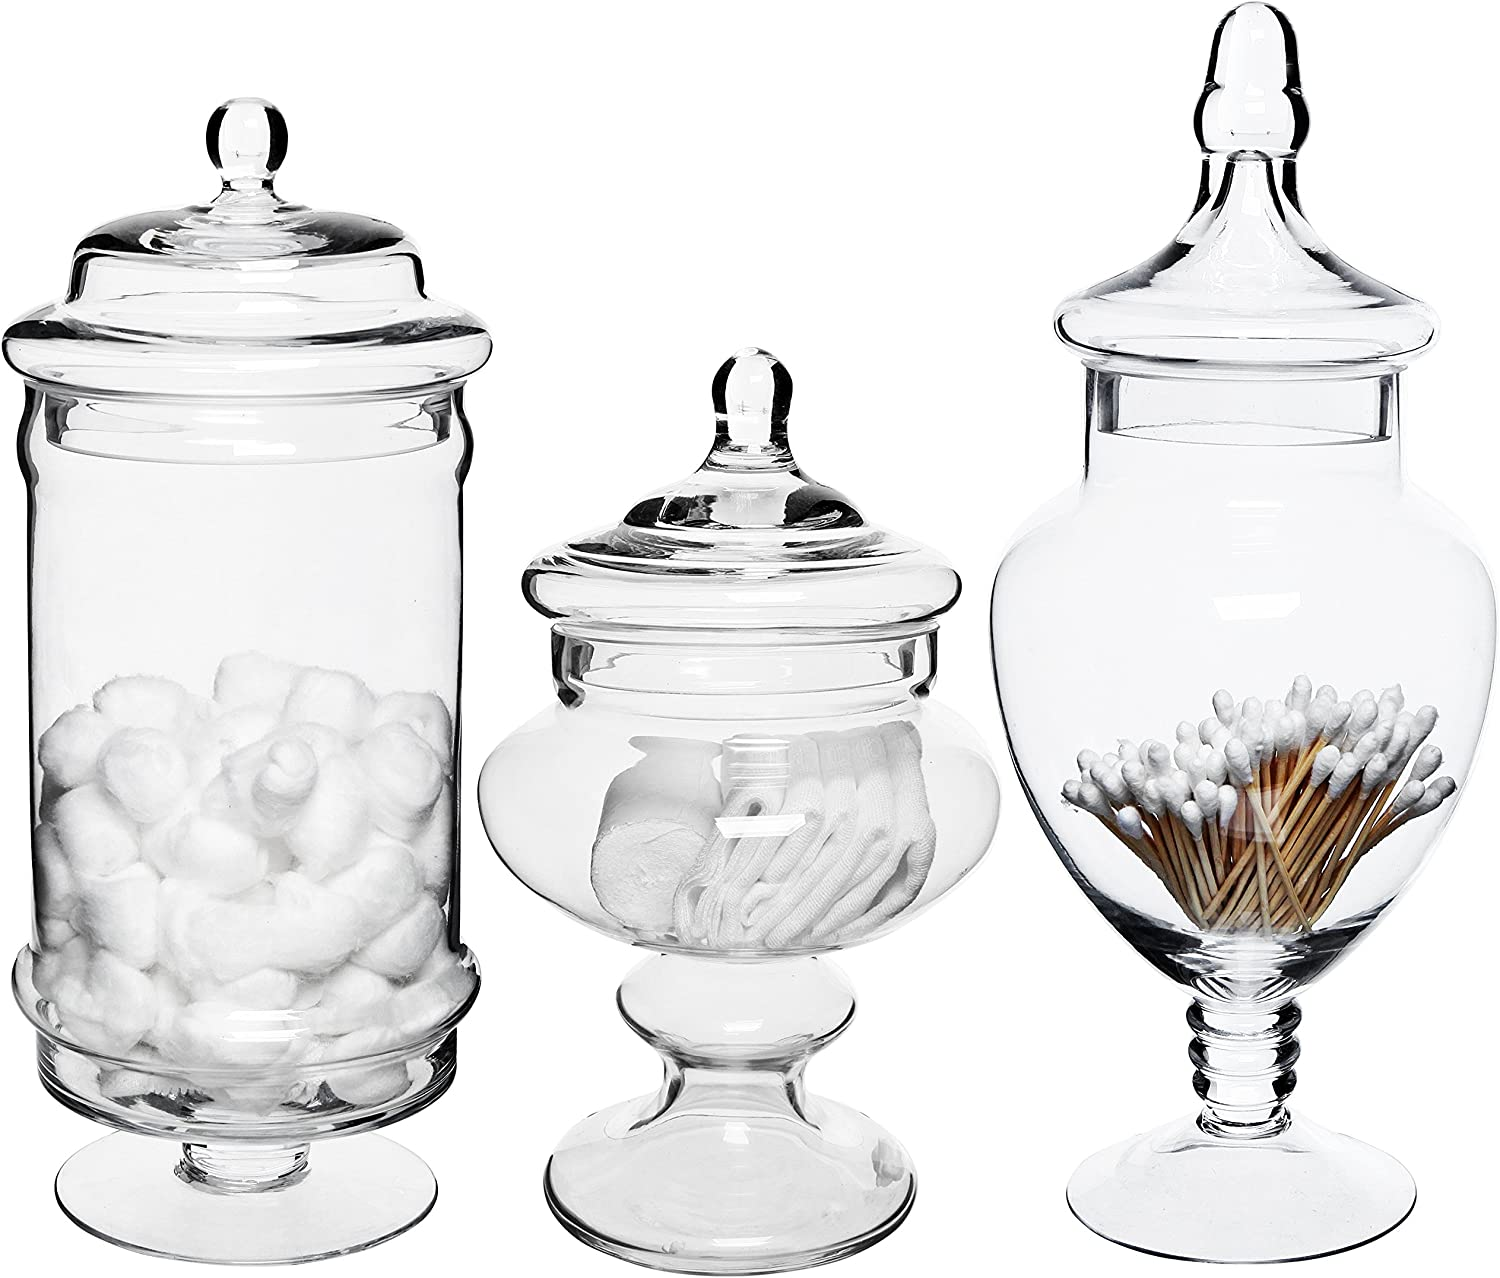 MyGift Set Long Beach Mall of 3 Deluxe Inventory cleanup selling sale Decorative Jars Apothecary Glass Bathroo